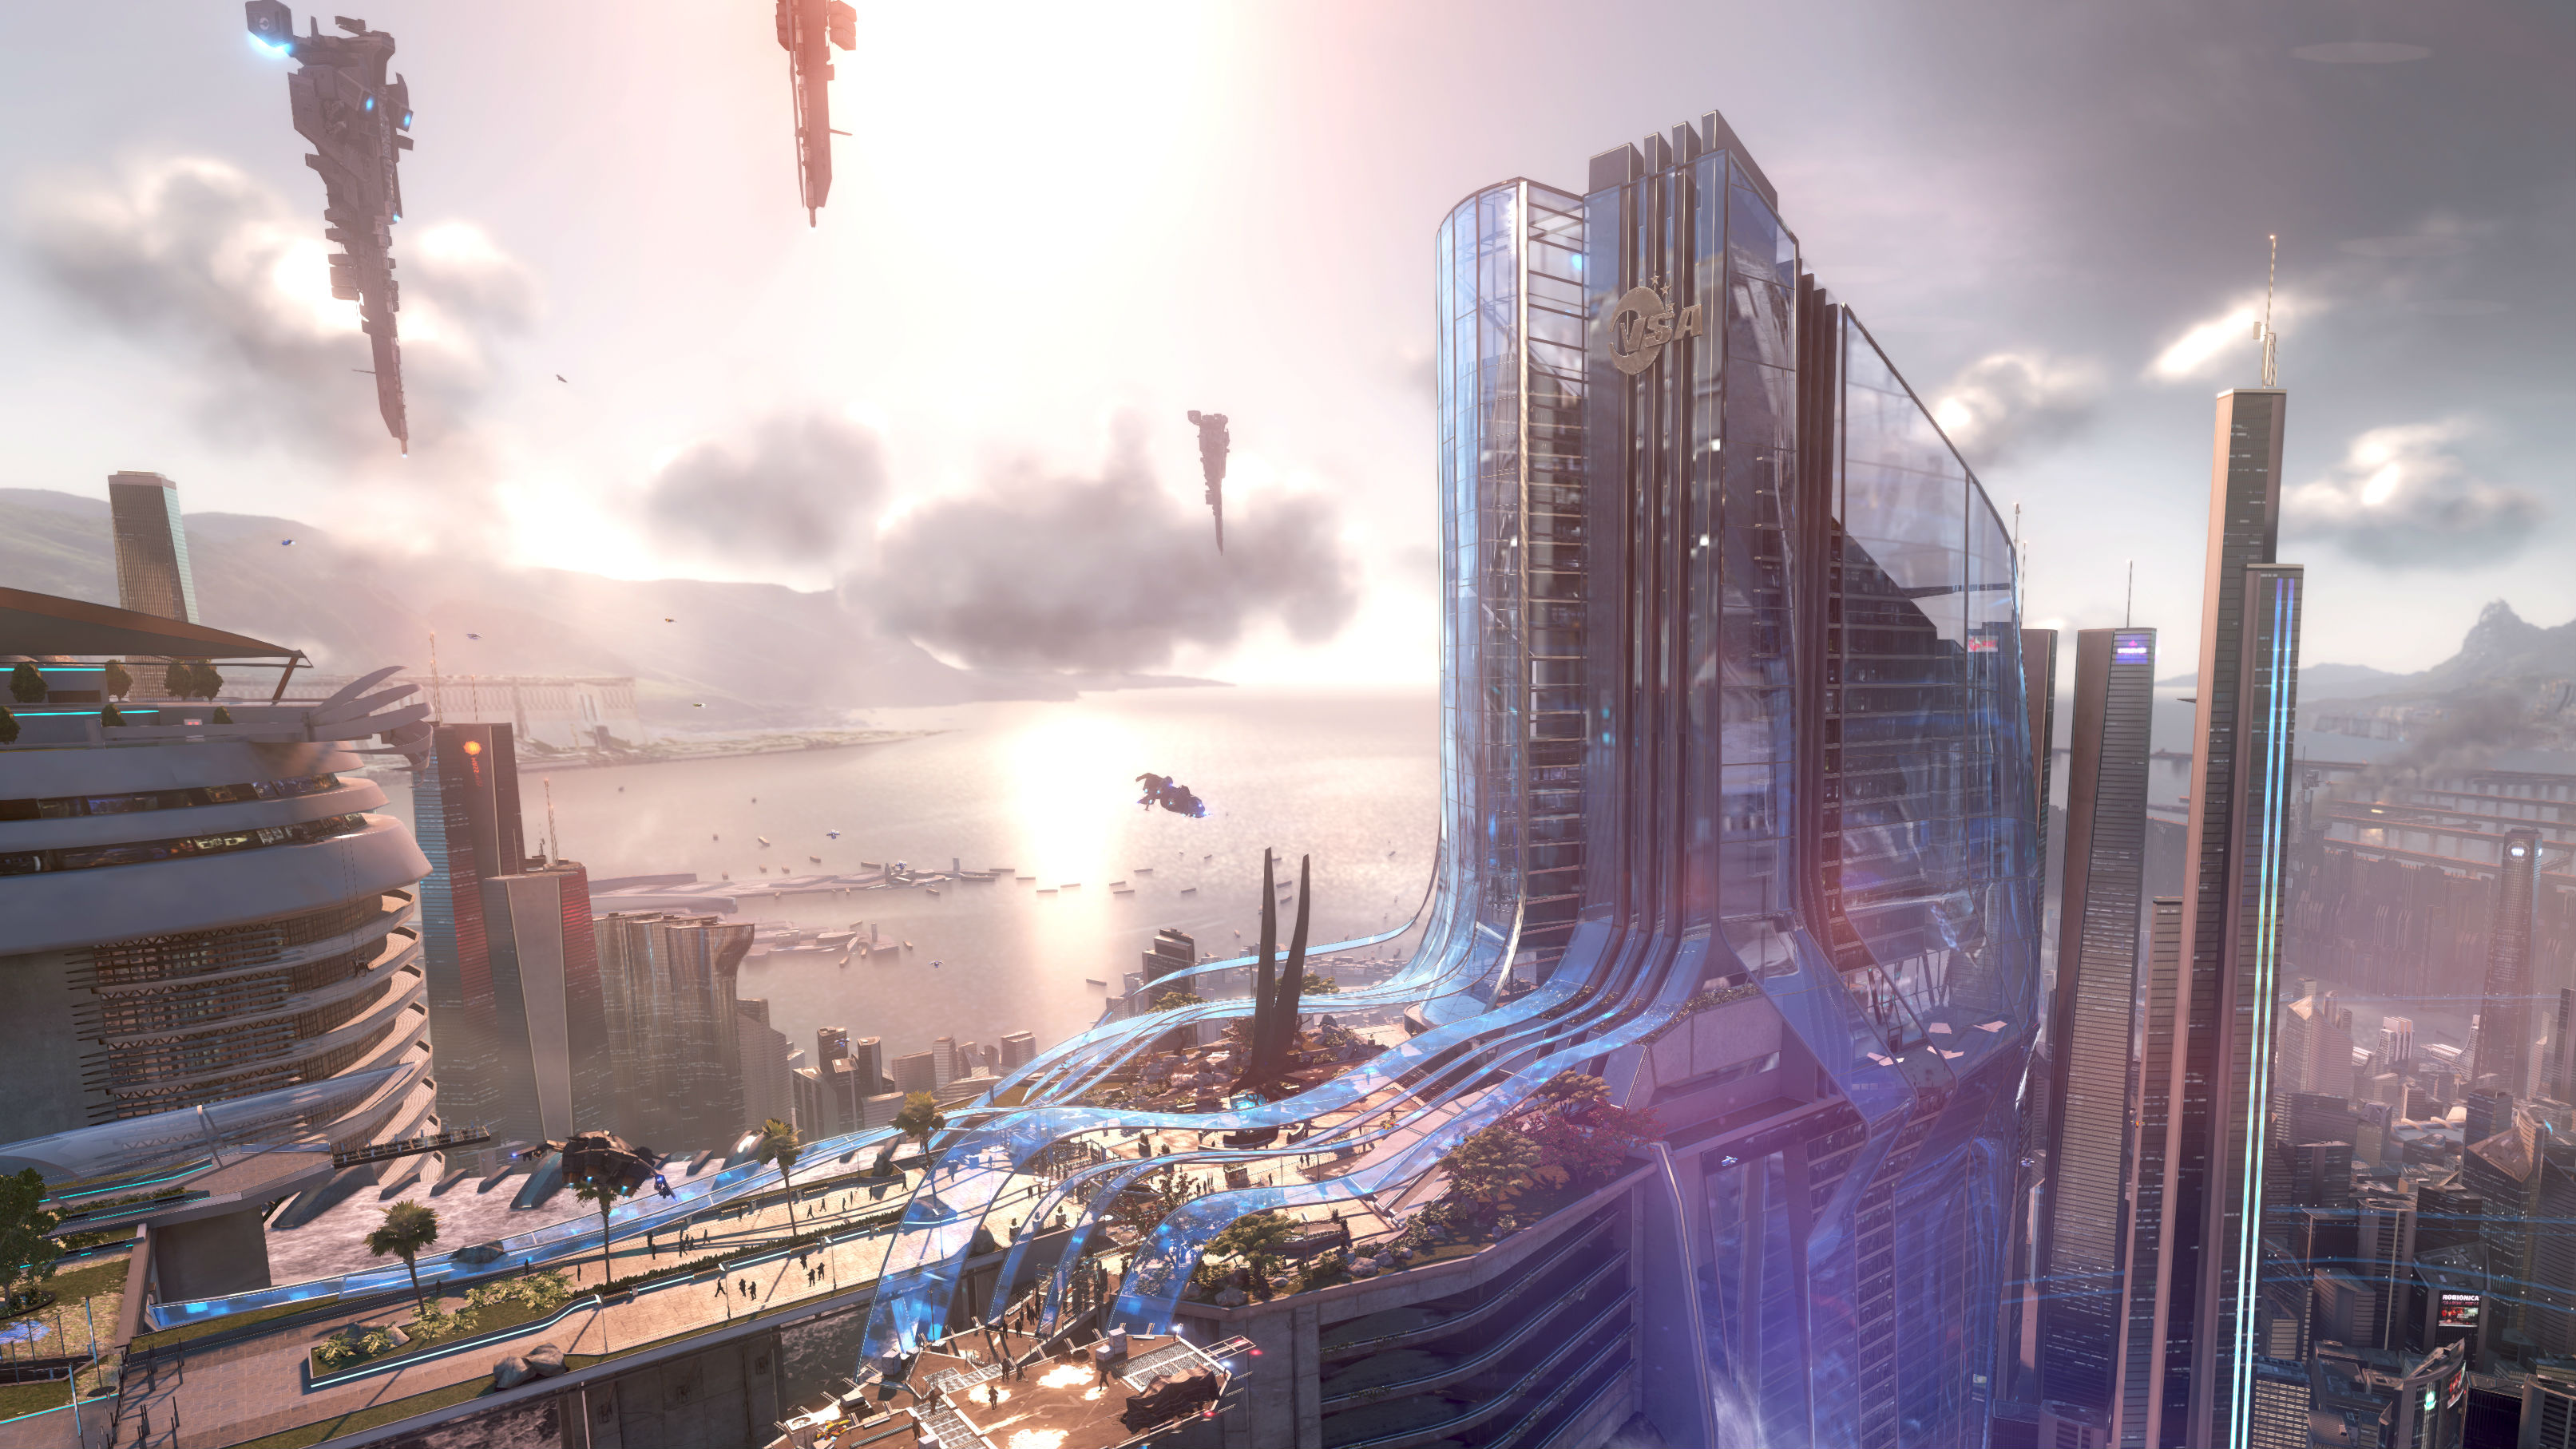 3226x1815 - Sci Fi City Wallpapers 1